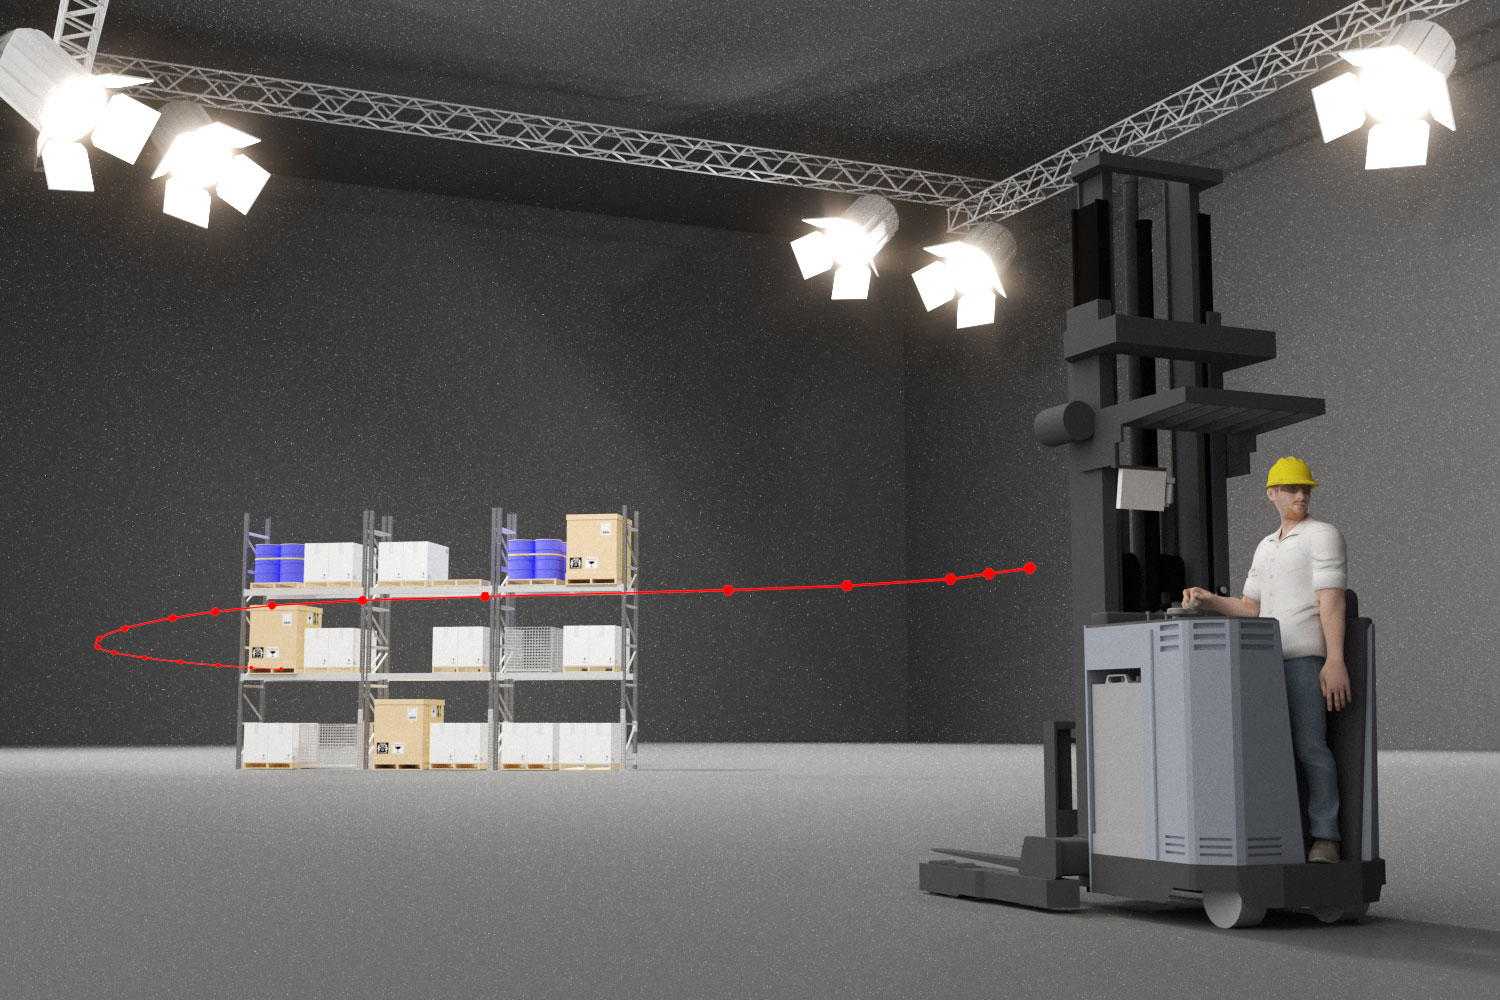 forklift-driver-in-large-room-with-shelving-unit